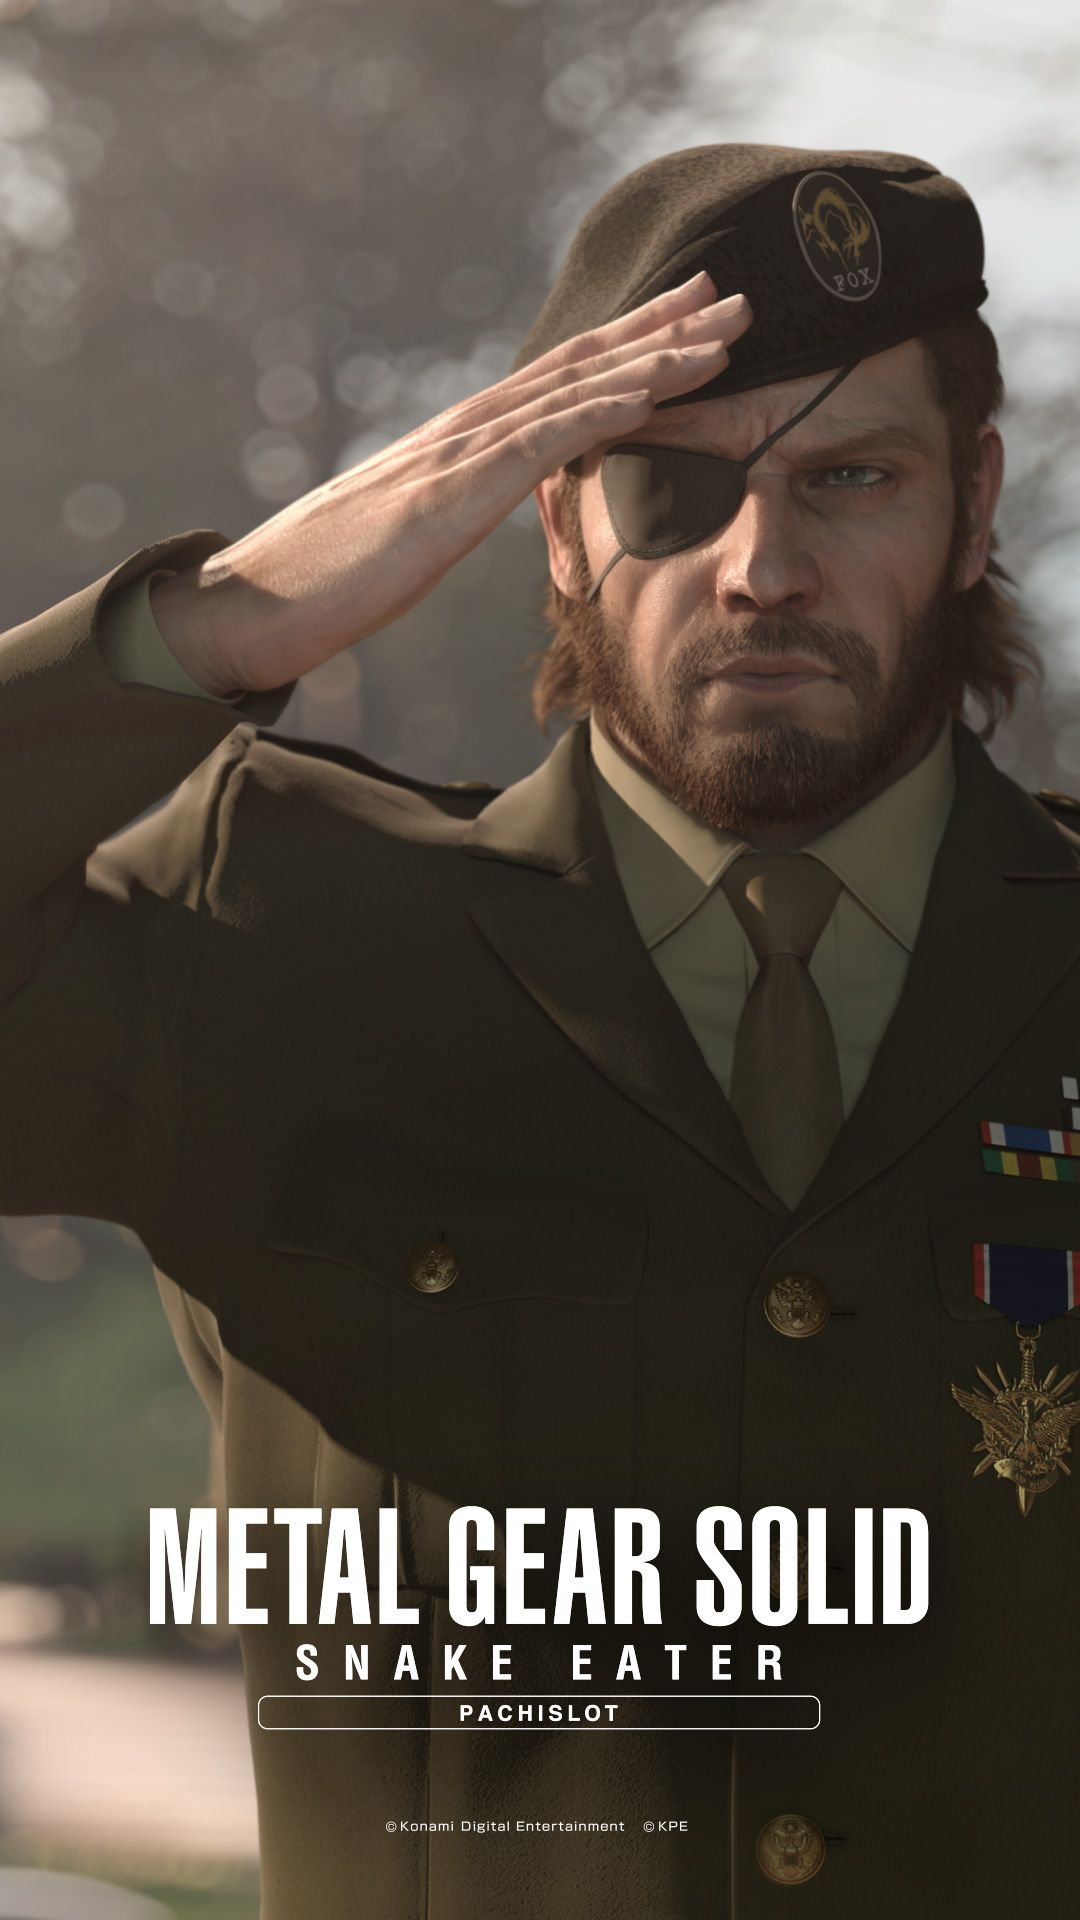 Mgs Snake Eater Pachislot Wallpaper Smartphone 5 Metal